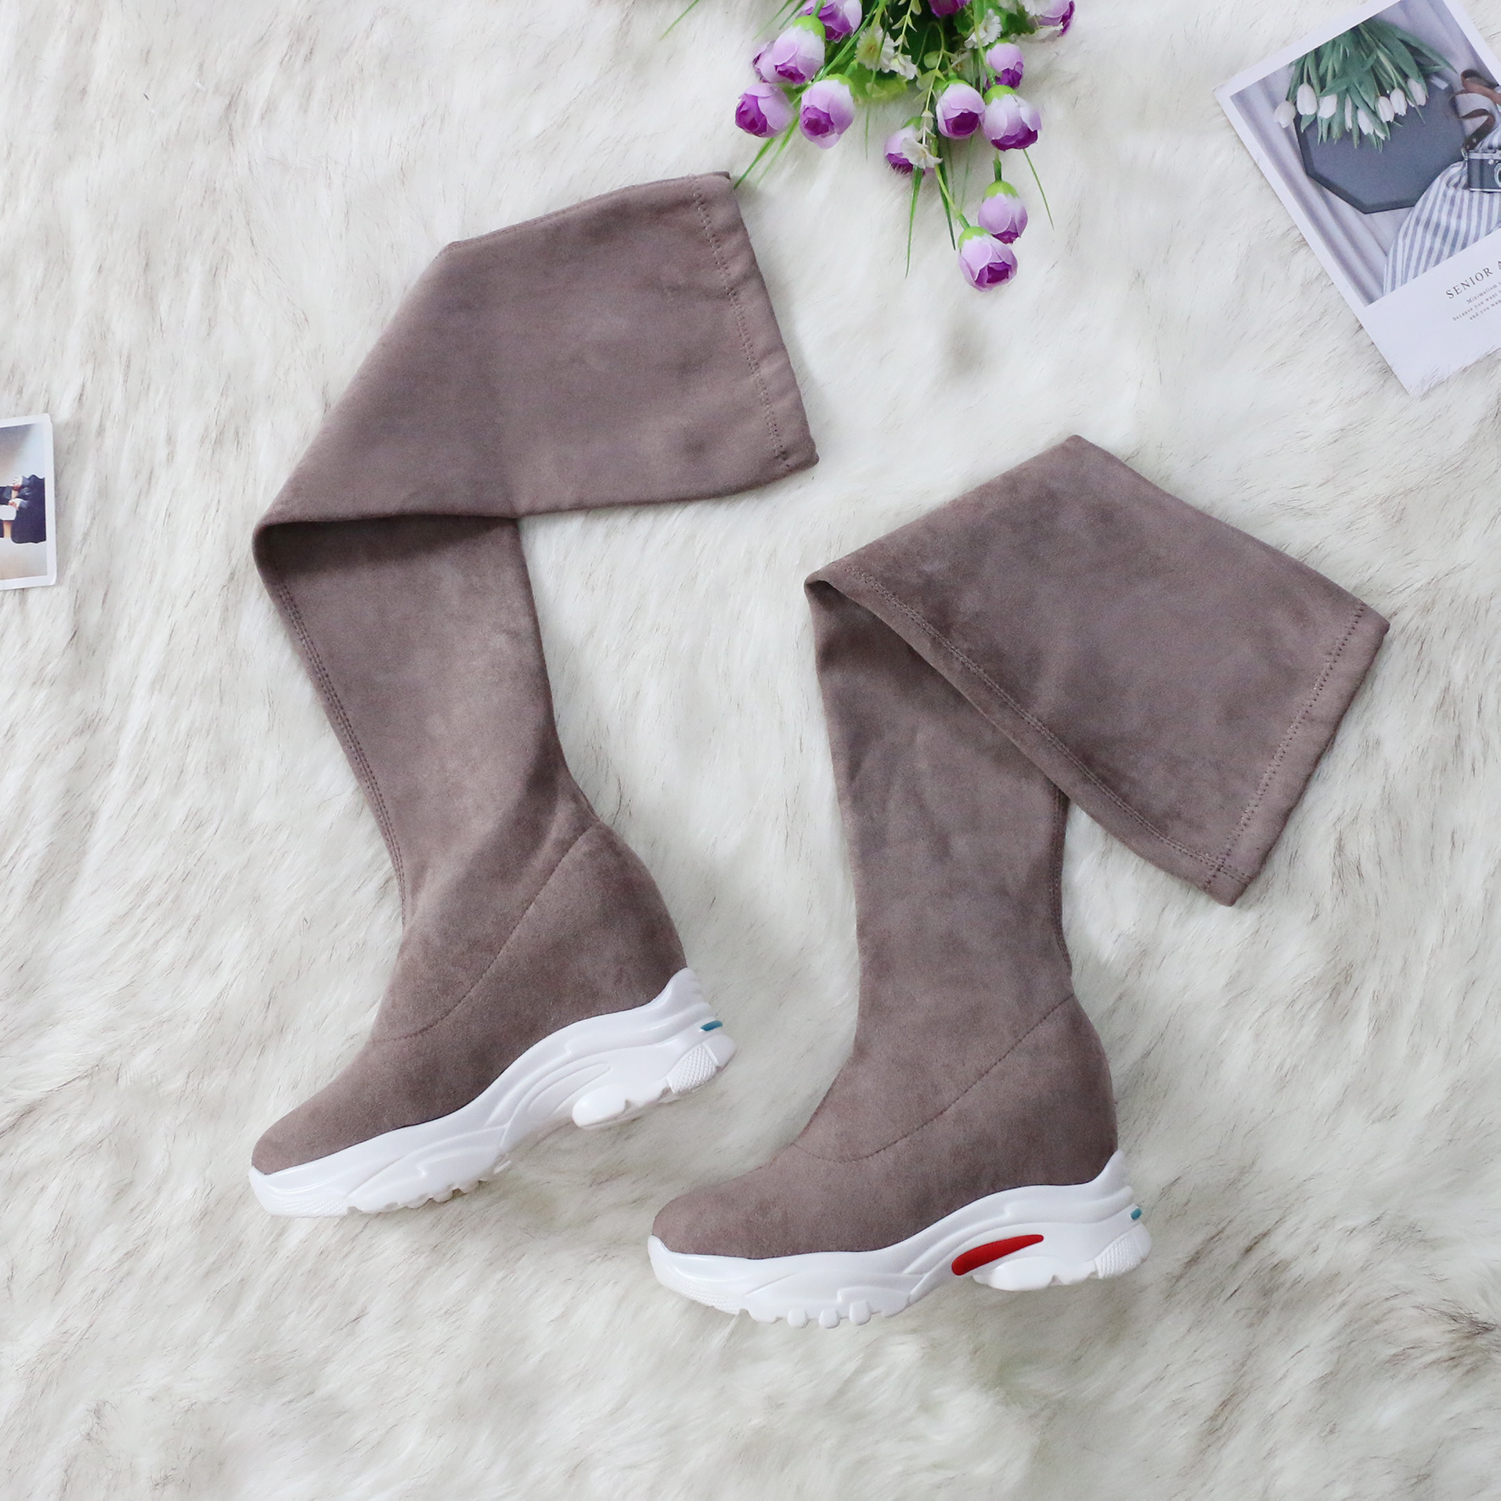 QUTAA 2021 Platform Casual Winter Over The Knee Women Boots Stretch Flock Wedges Heel Women Shoes Autumn Winter Boots Size34-43